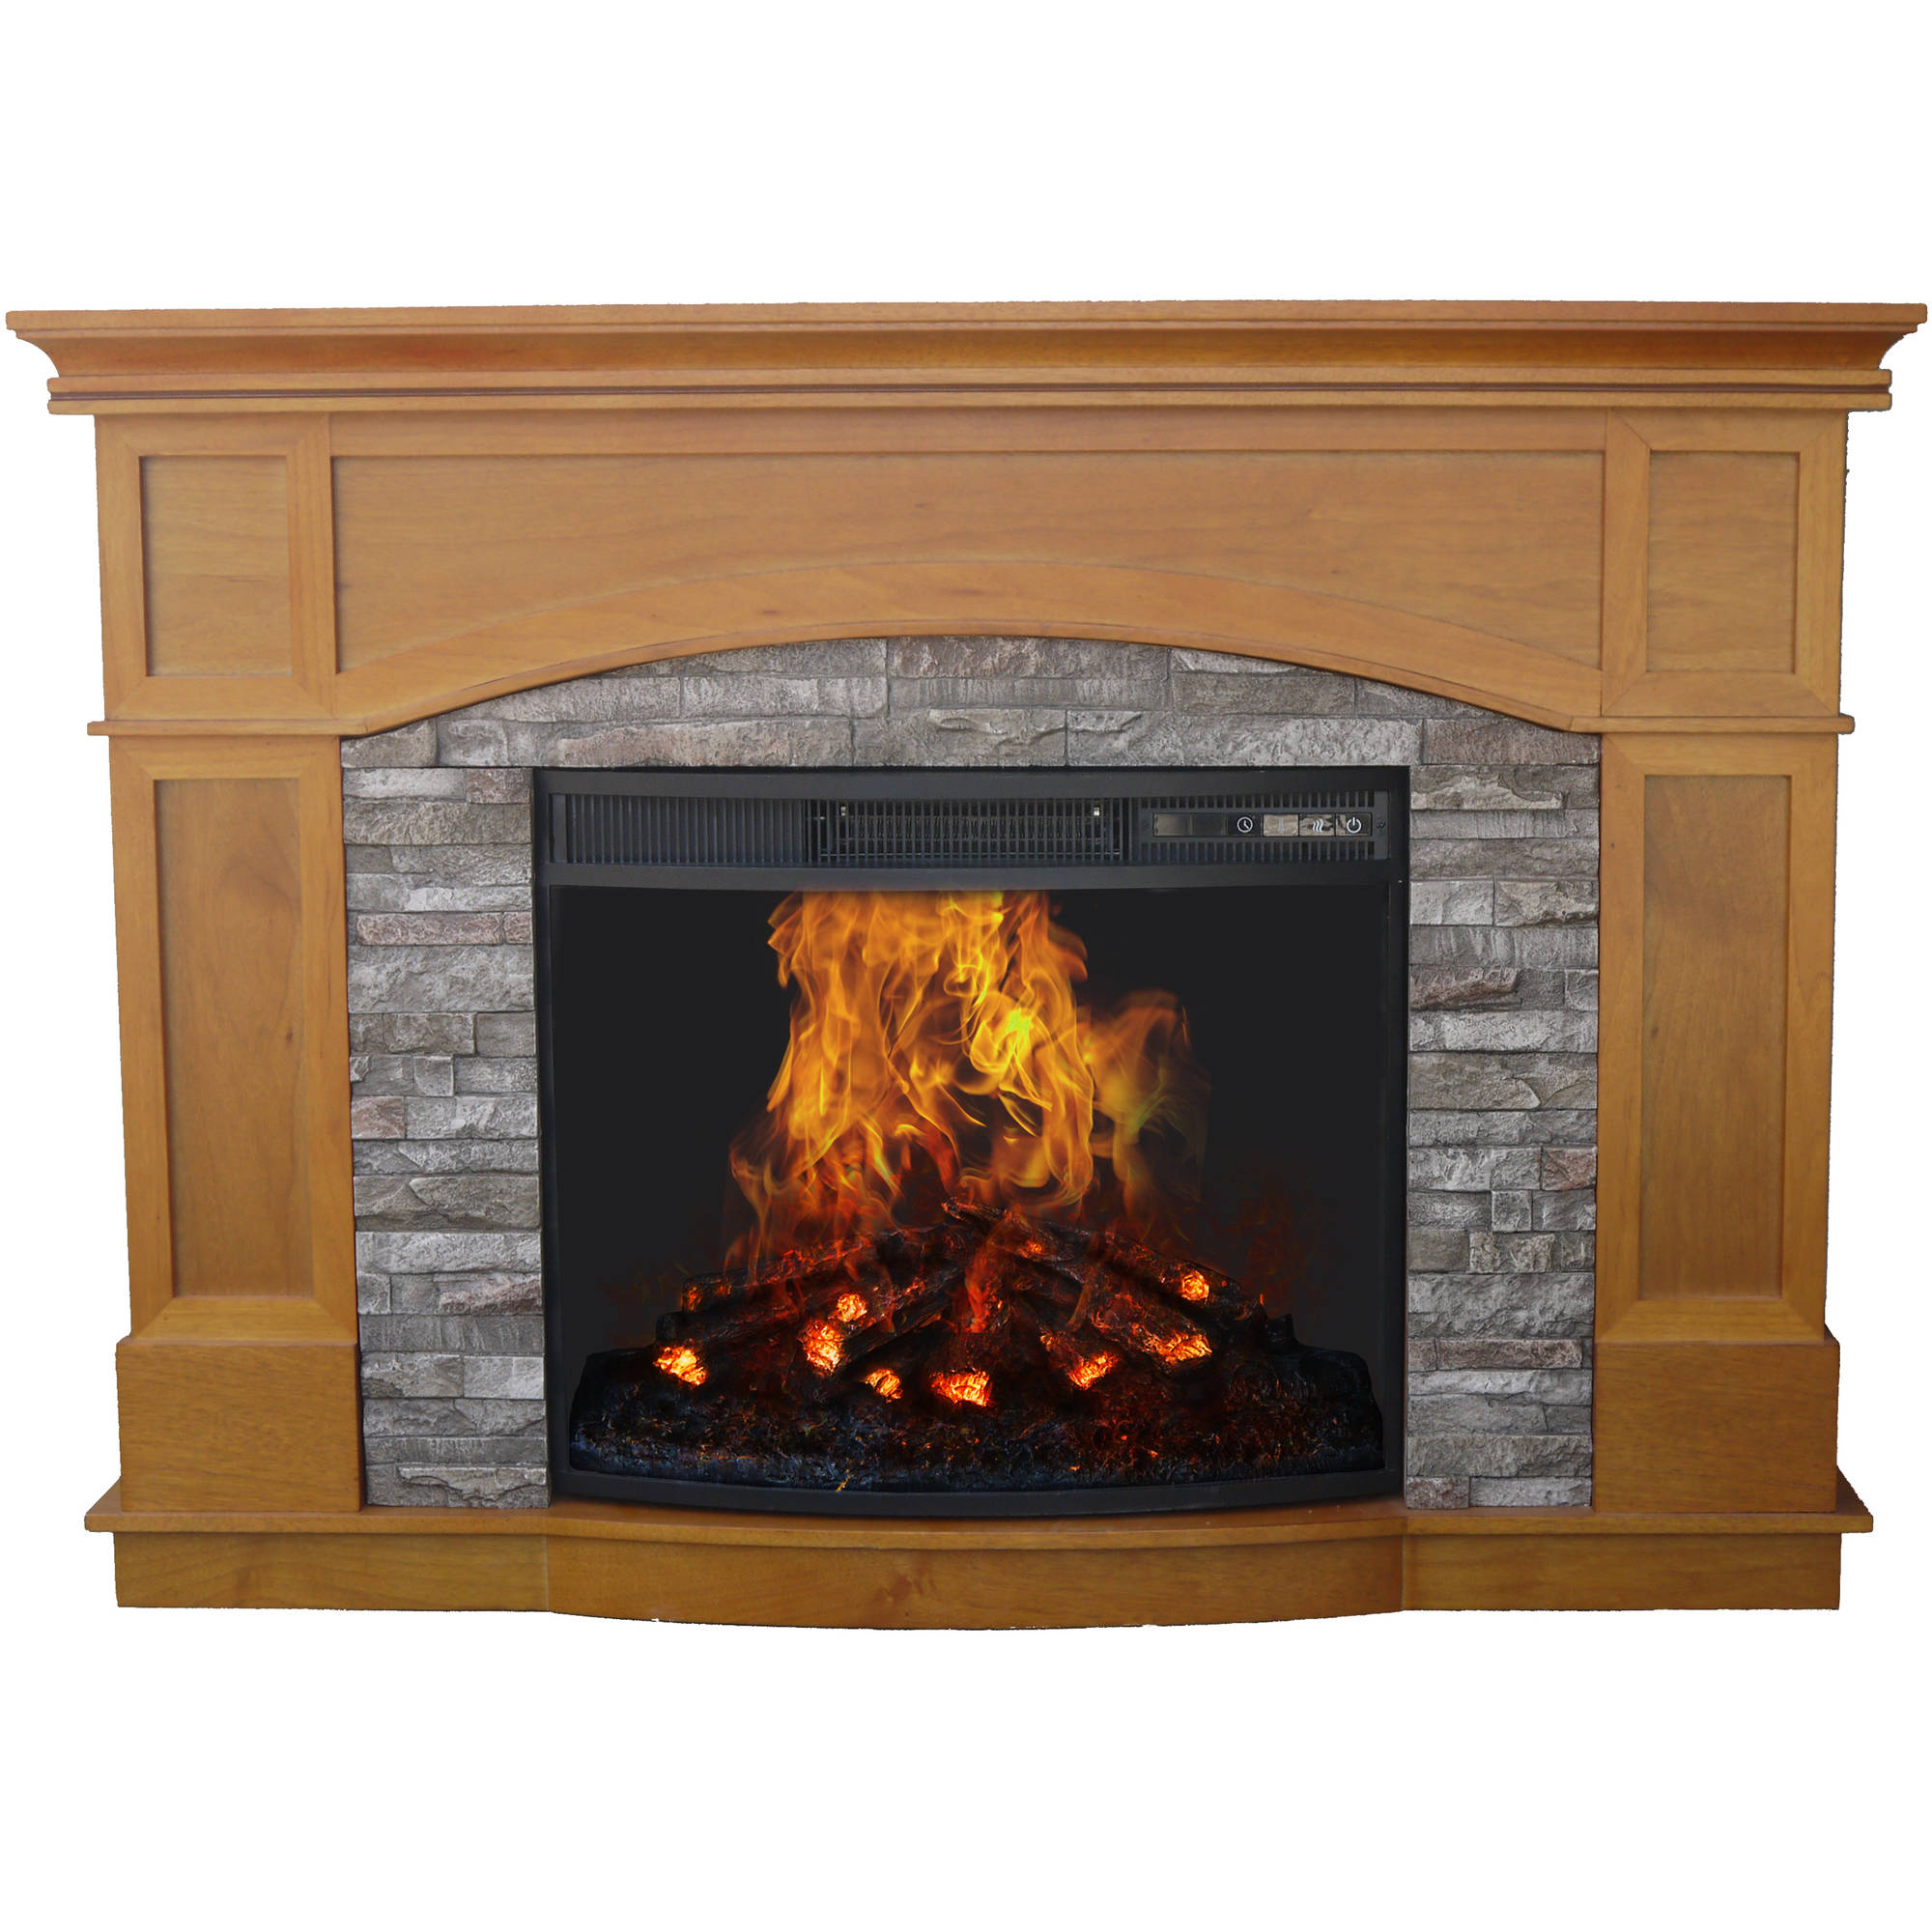 Walmart Black Electric Fireplace Dinatale Wall Mounted Electric Fireplace In Black By Real Flame